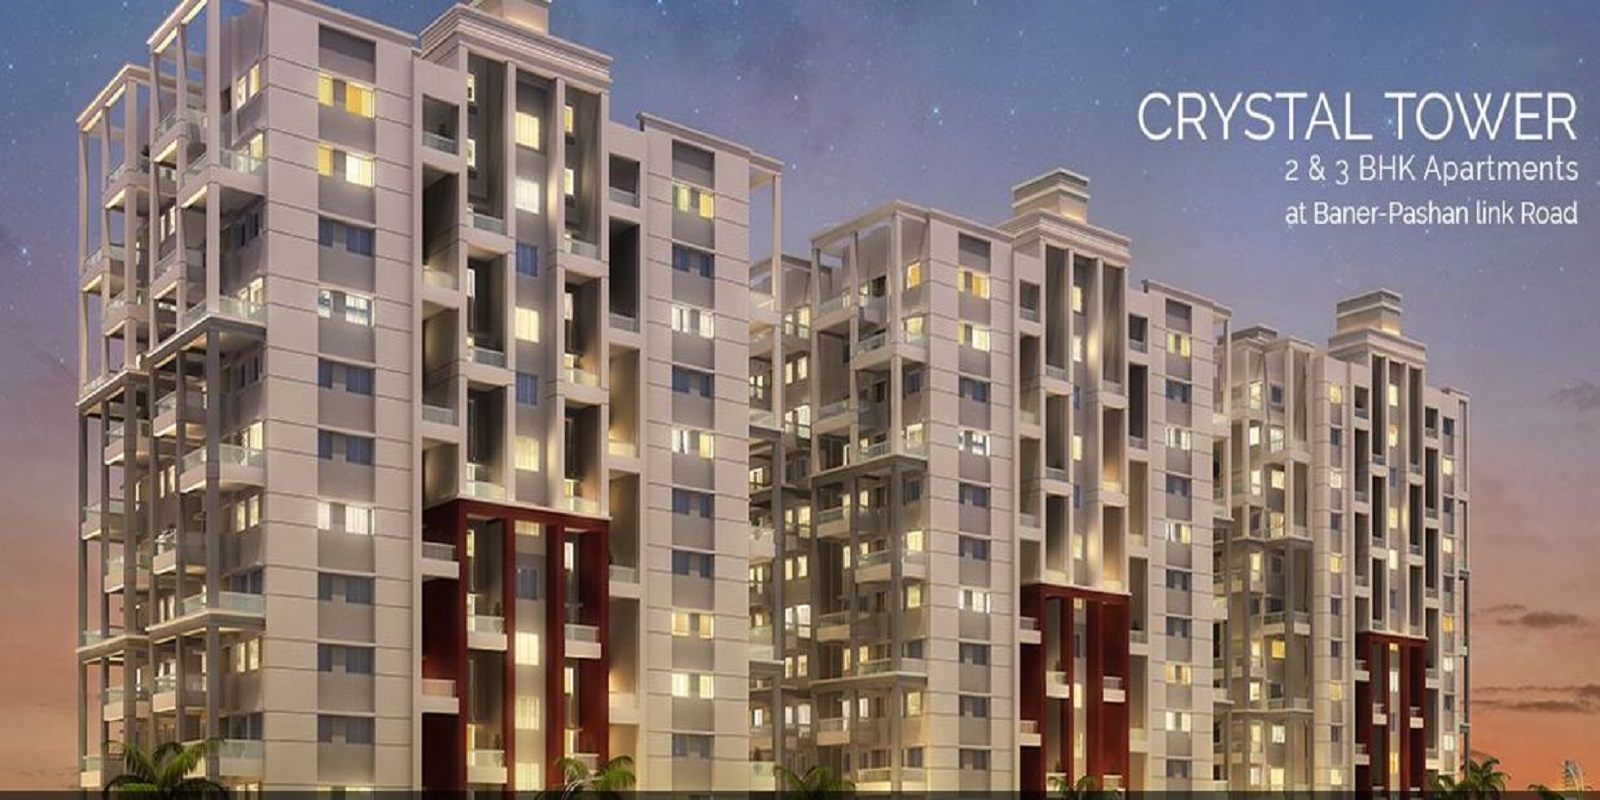 paranjape schemes crystal towers project large image1